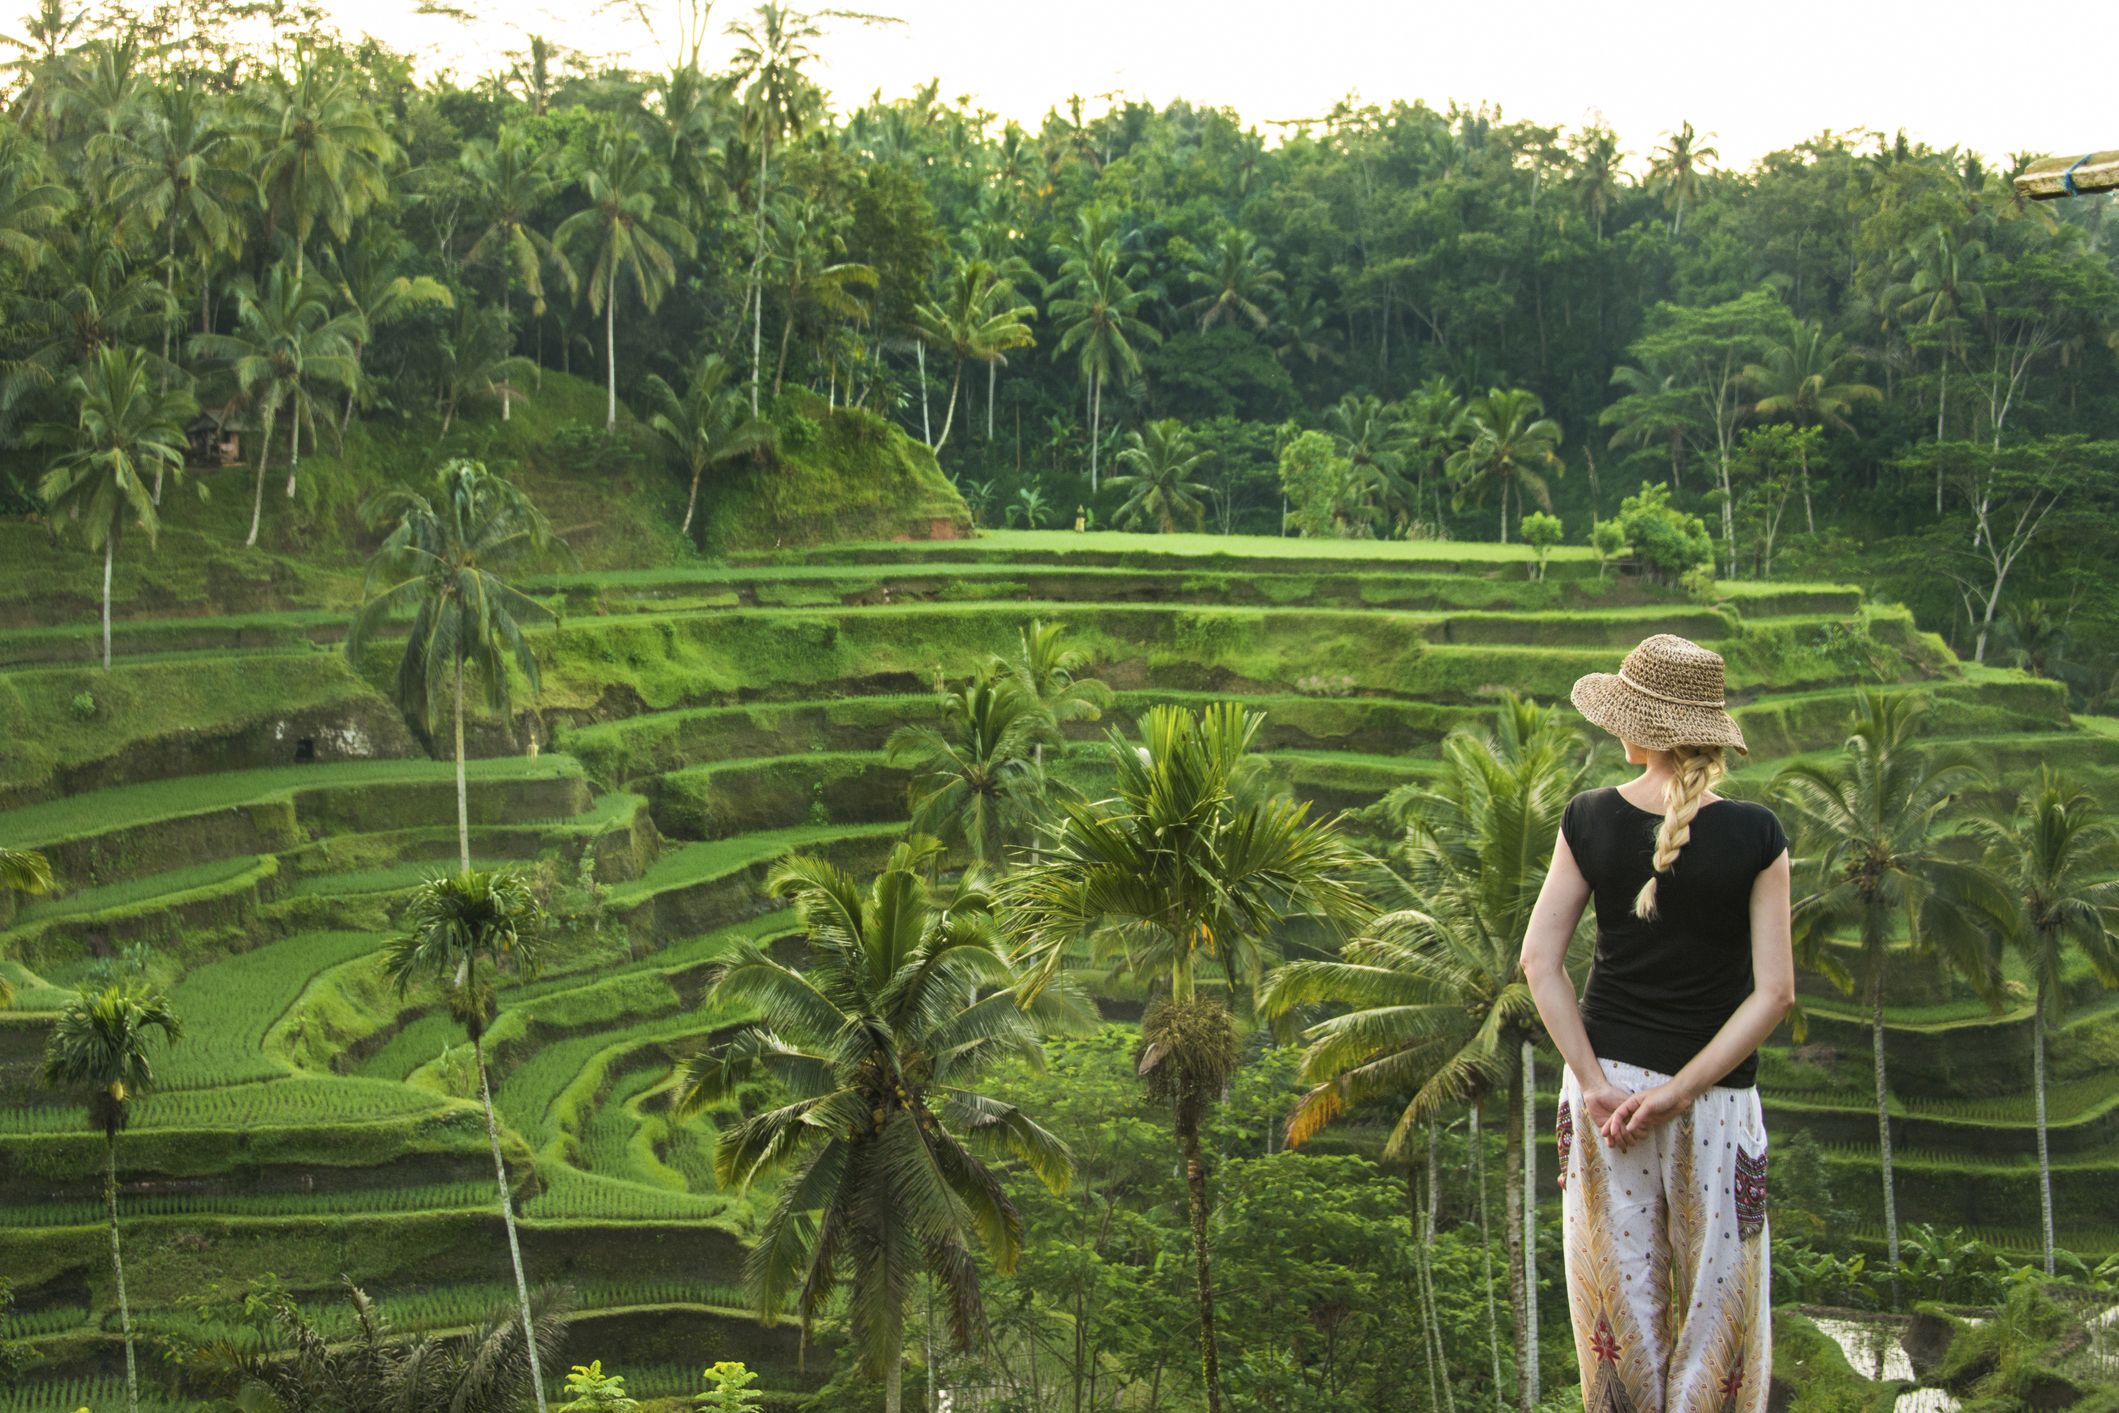 Rice paddies in Ubud. Image: Getty Images / Smith Photographers